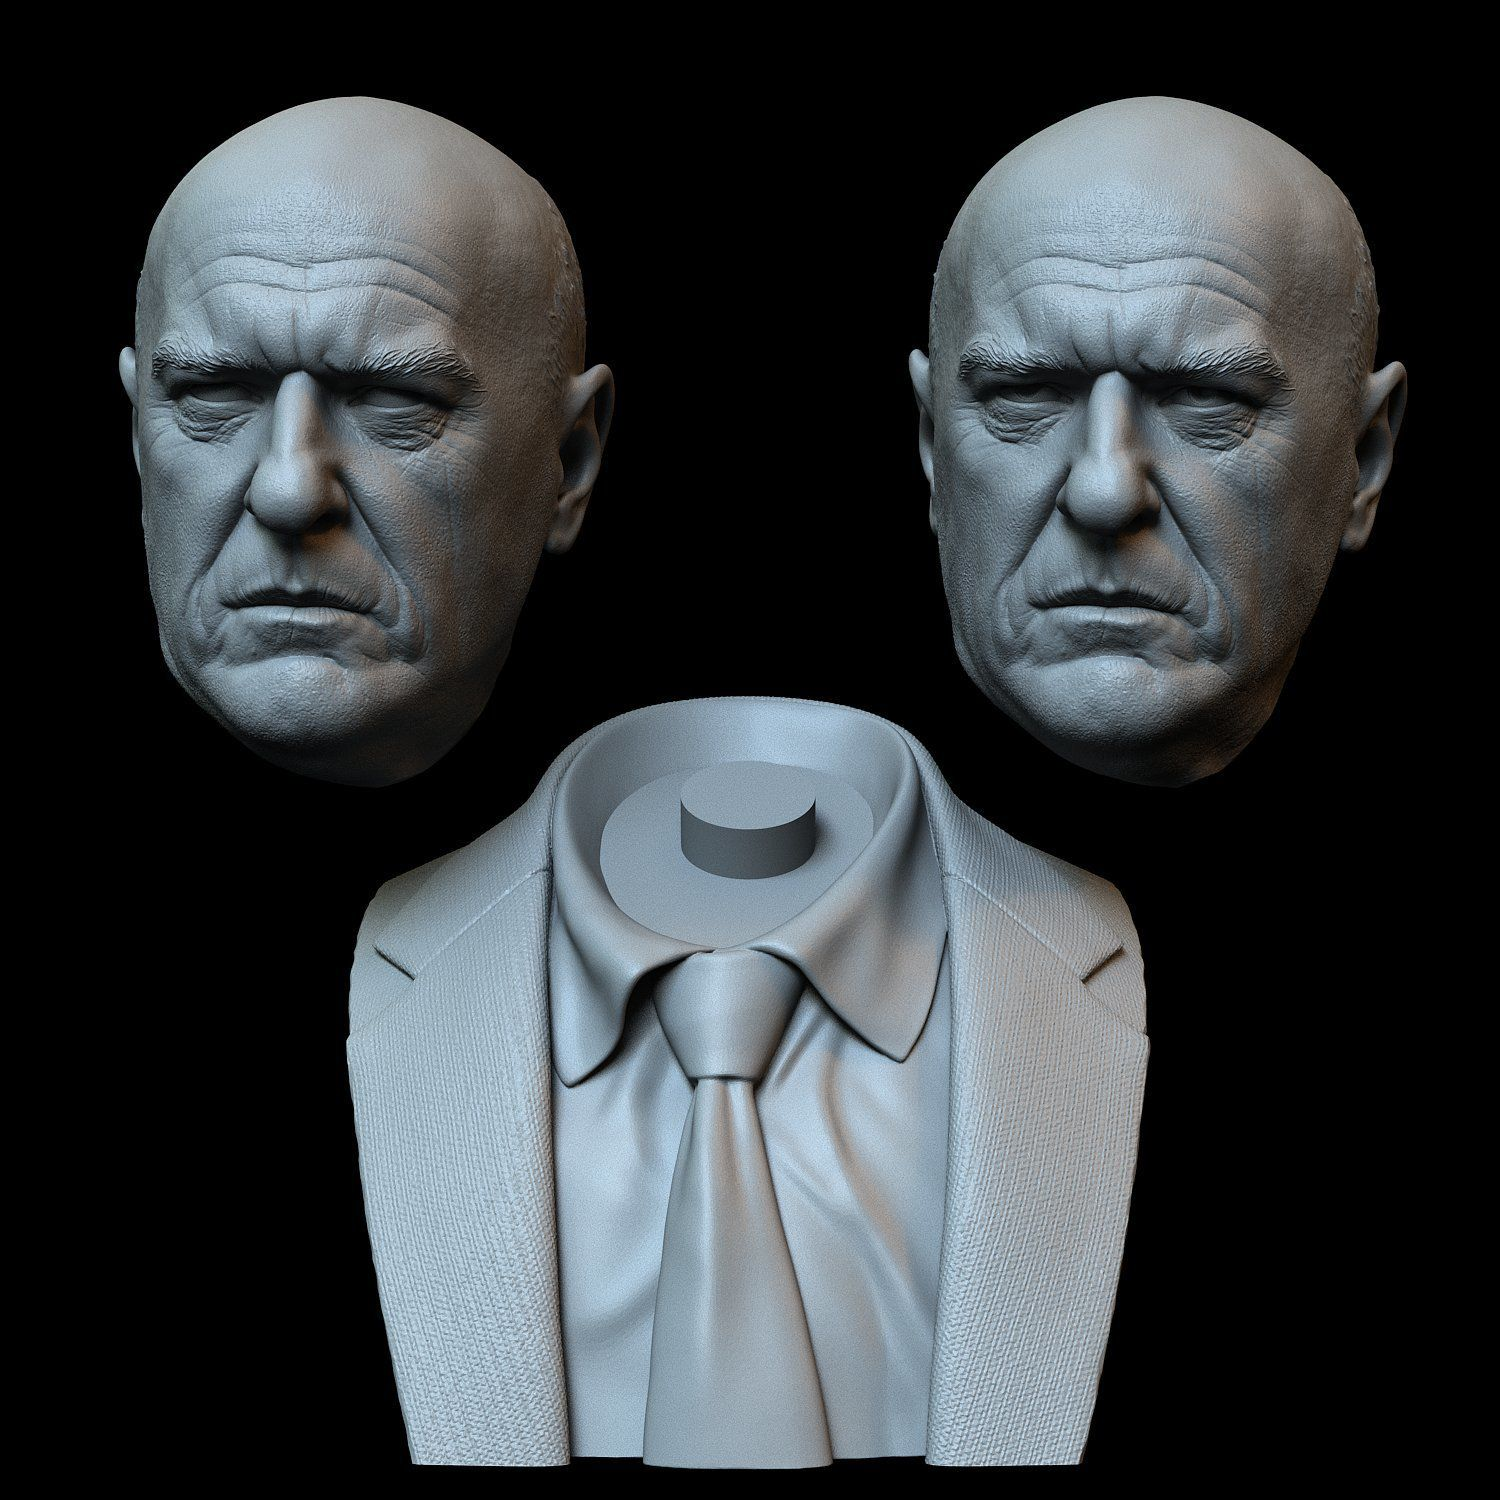 Hank09.RGB_color.jpg Download STL file Hank Schrader (Dean Norris) from Breaking Bad • Template to 3D print, sidnaique